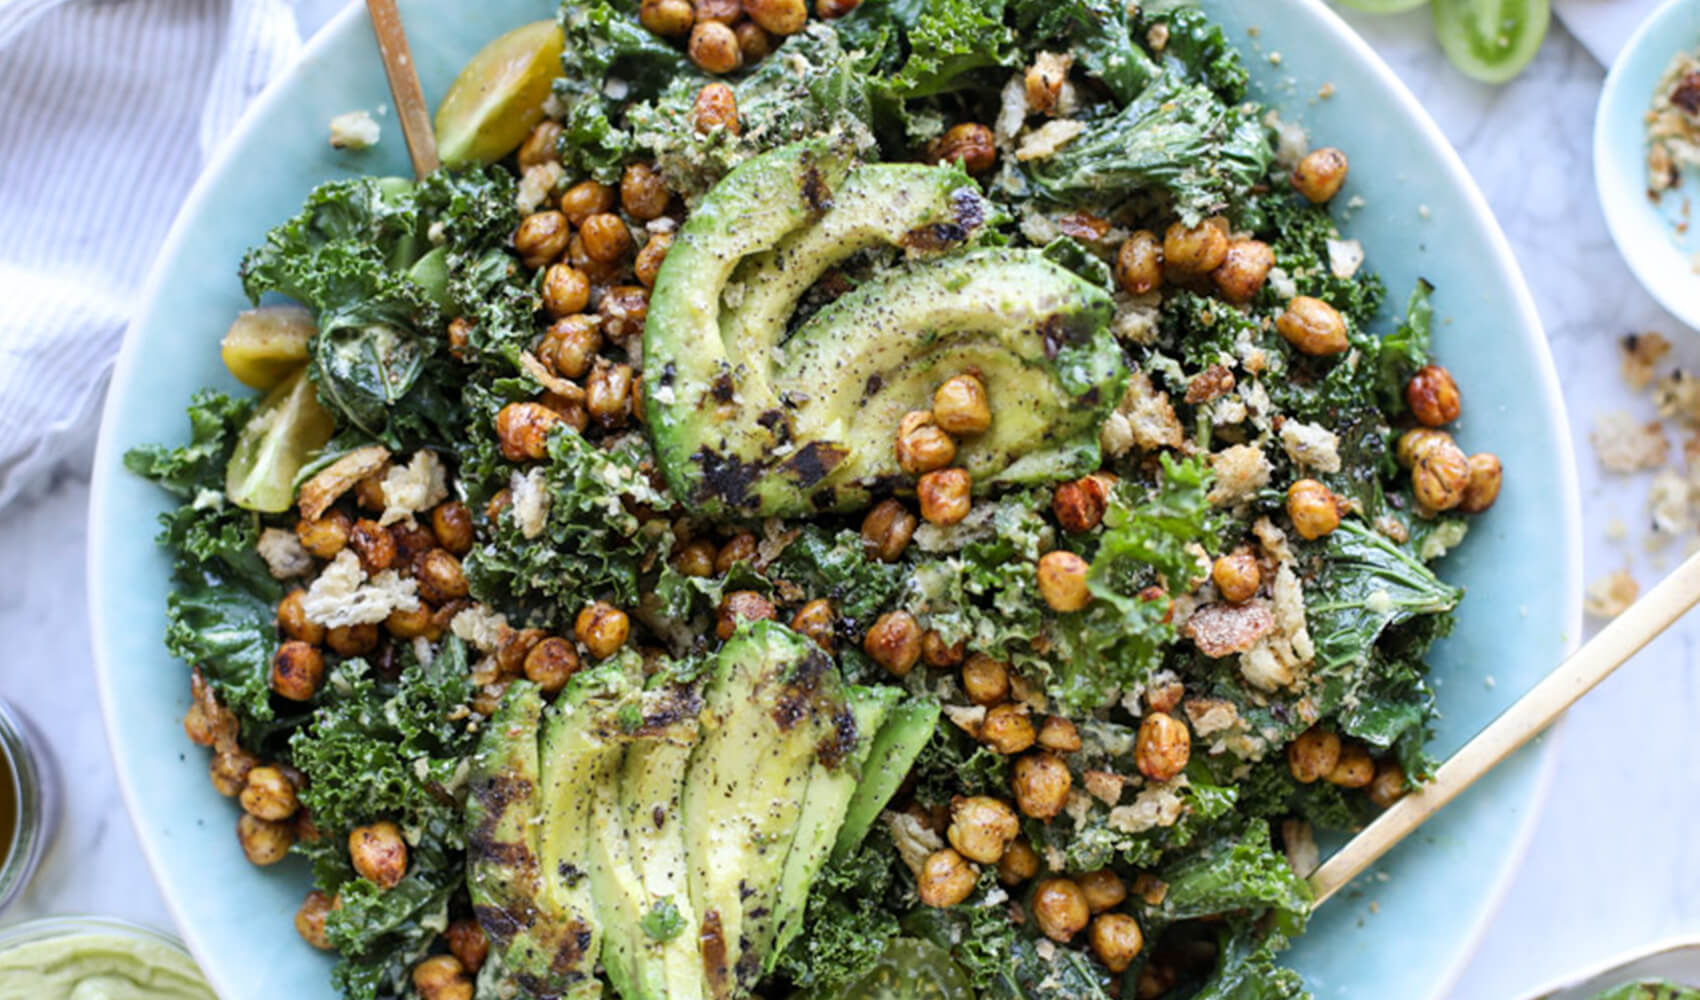 Grilled Kale Avocado Salad